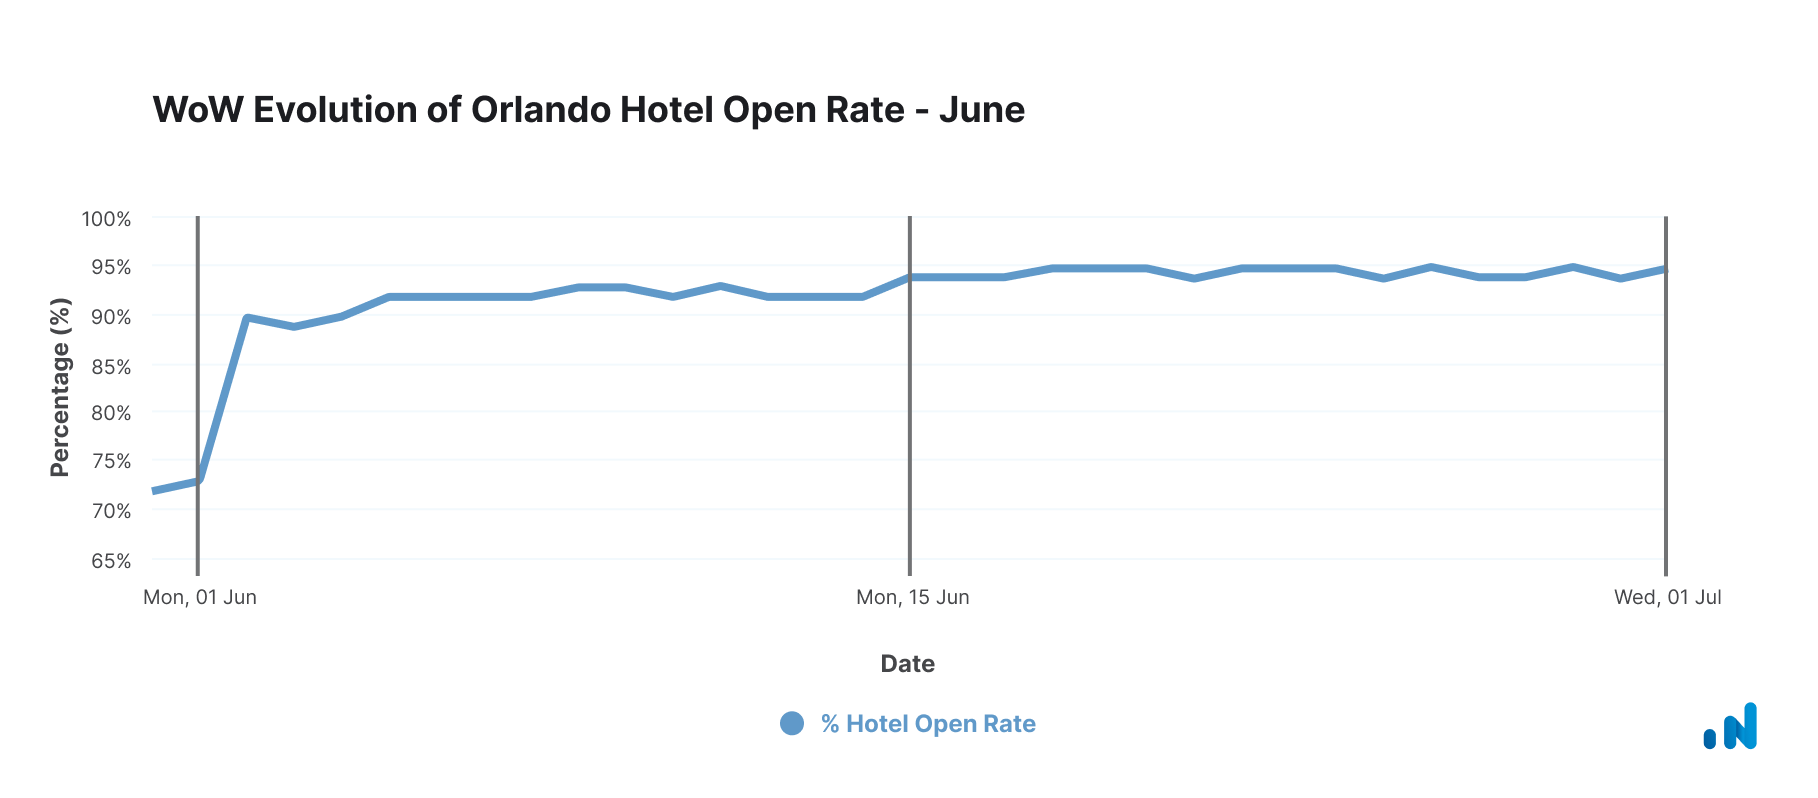 WoW Evolution of Orlando Hotel Open Rate - June